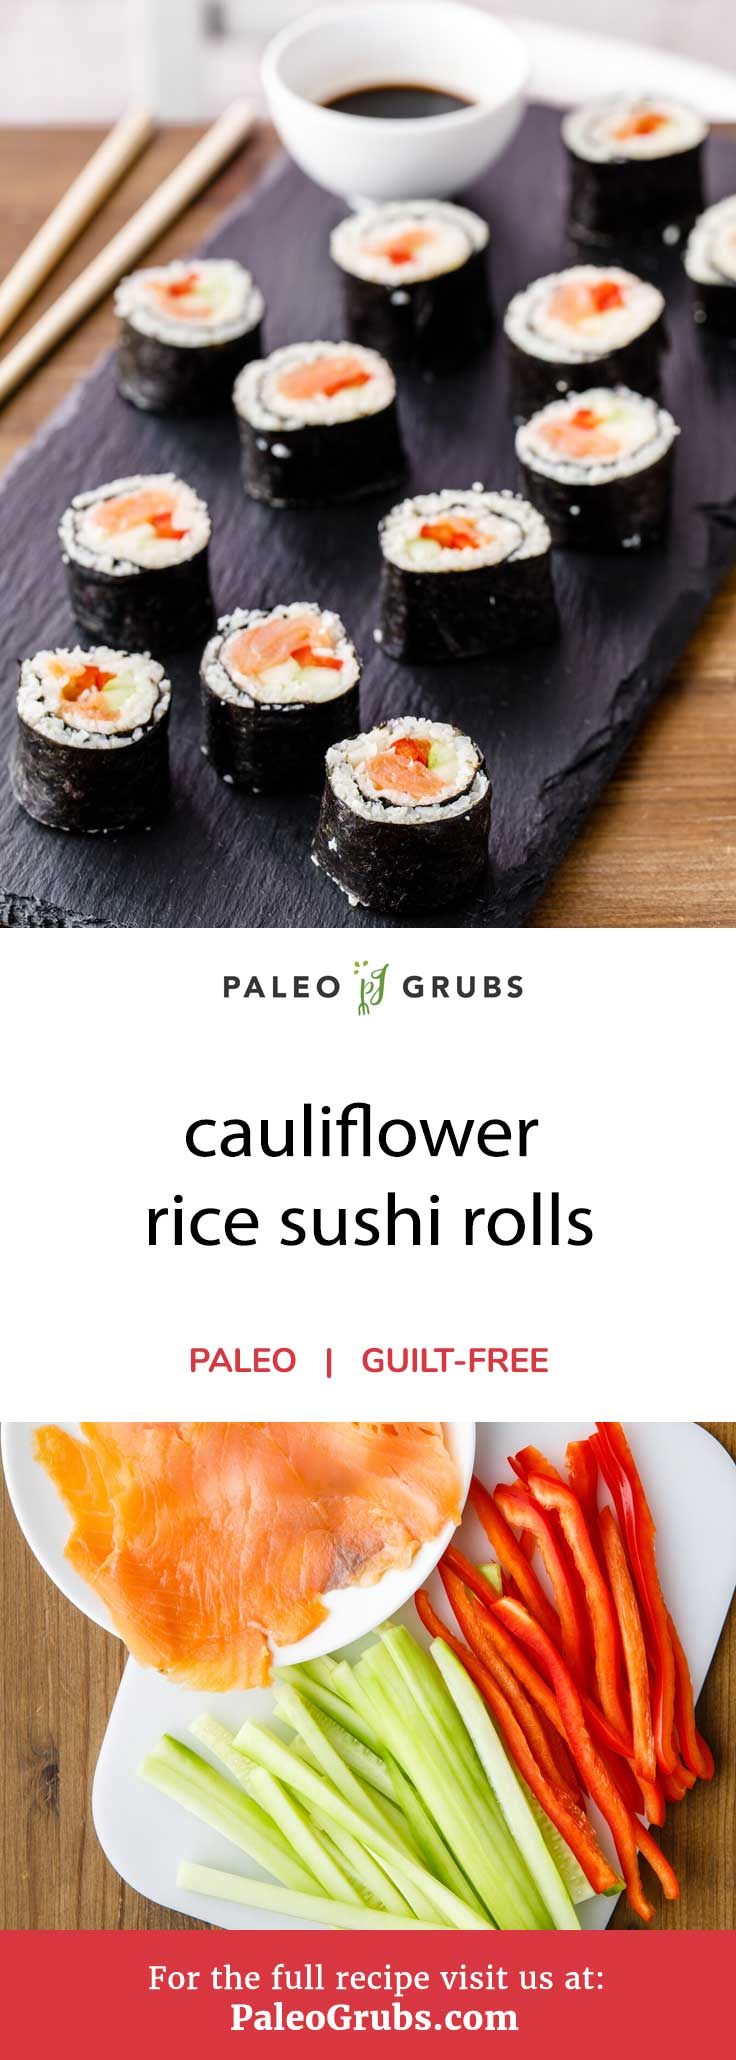 Thanks to cauliflower rice, there's finally a 100% paleo-friendly sushi recipe available. Other than replacing white sticky rice commonly found in sushi with cauliflower florets, this recipe features everything else you'd expect to find when making tasty sushi. It uses smoked salmon, fresh veggies, and even adds apple cider vinegar and honey into the mix. The end result is a delightful low carb cauliflower rice sushi roll that will please even the most hardened of sushi critics out there.